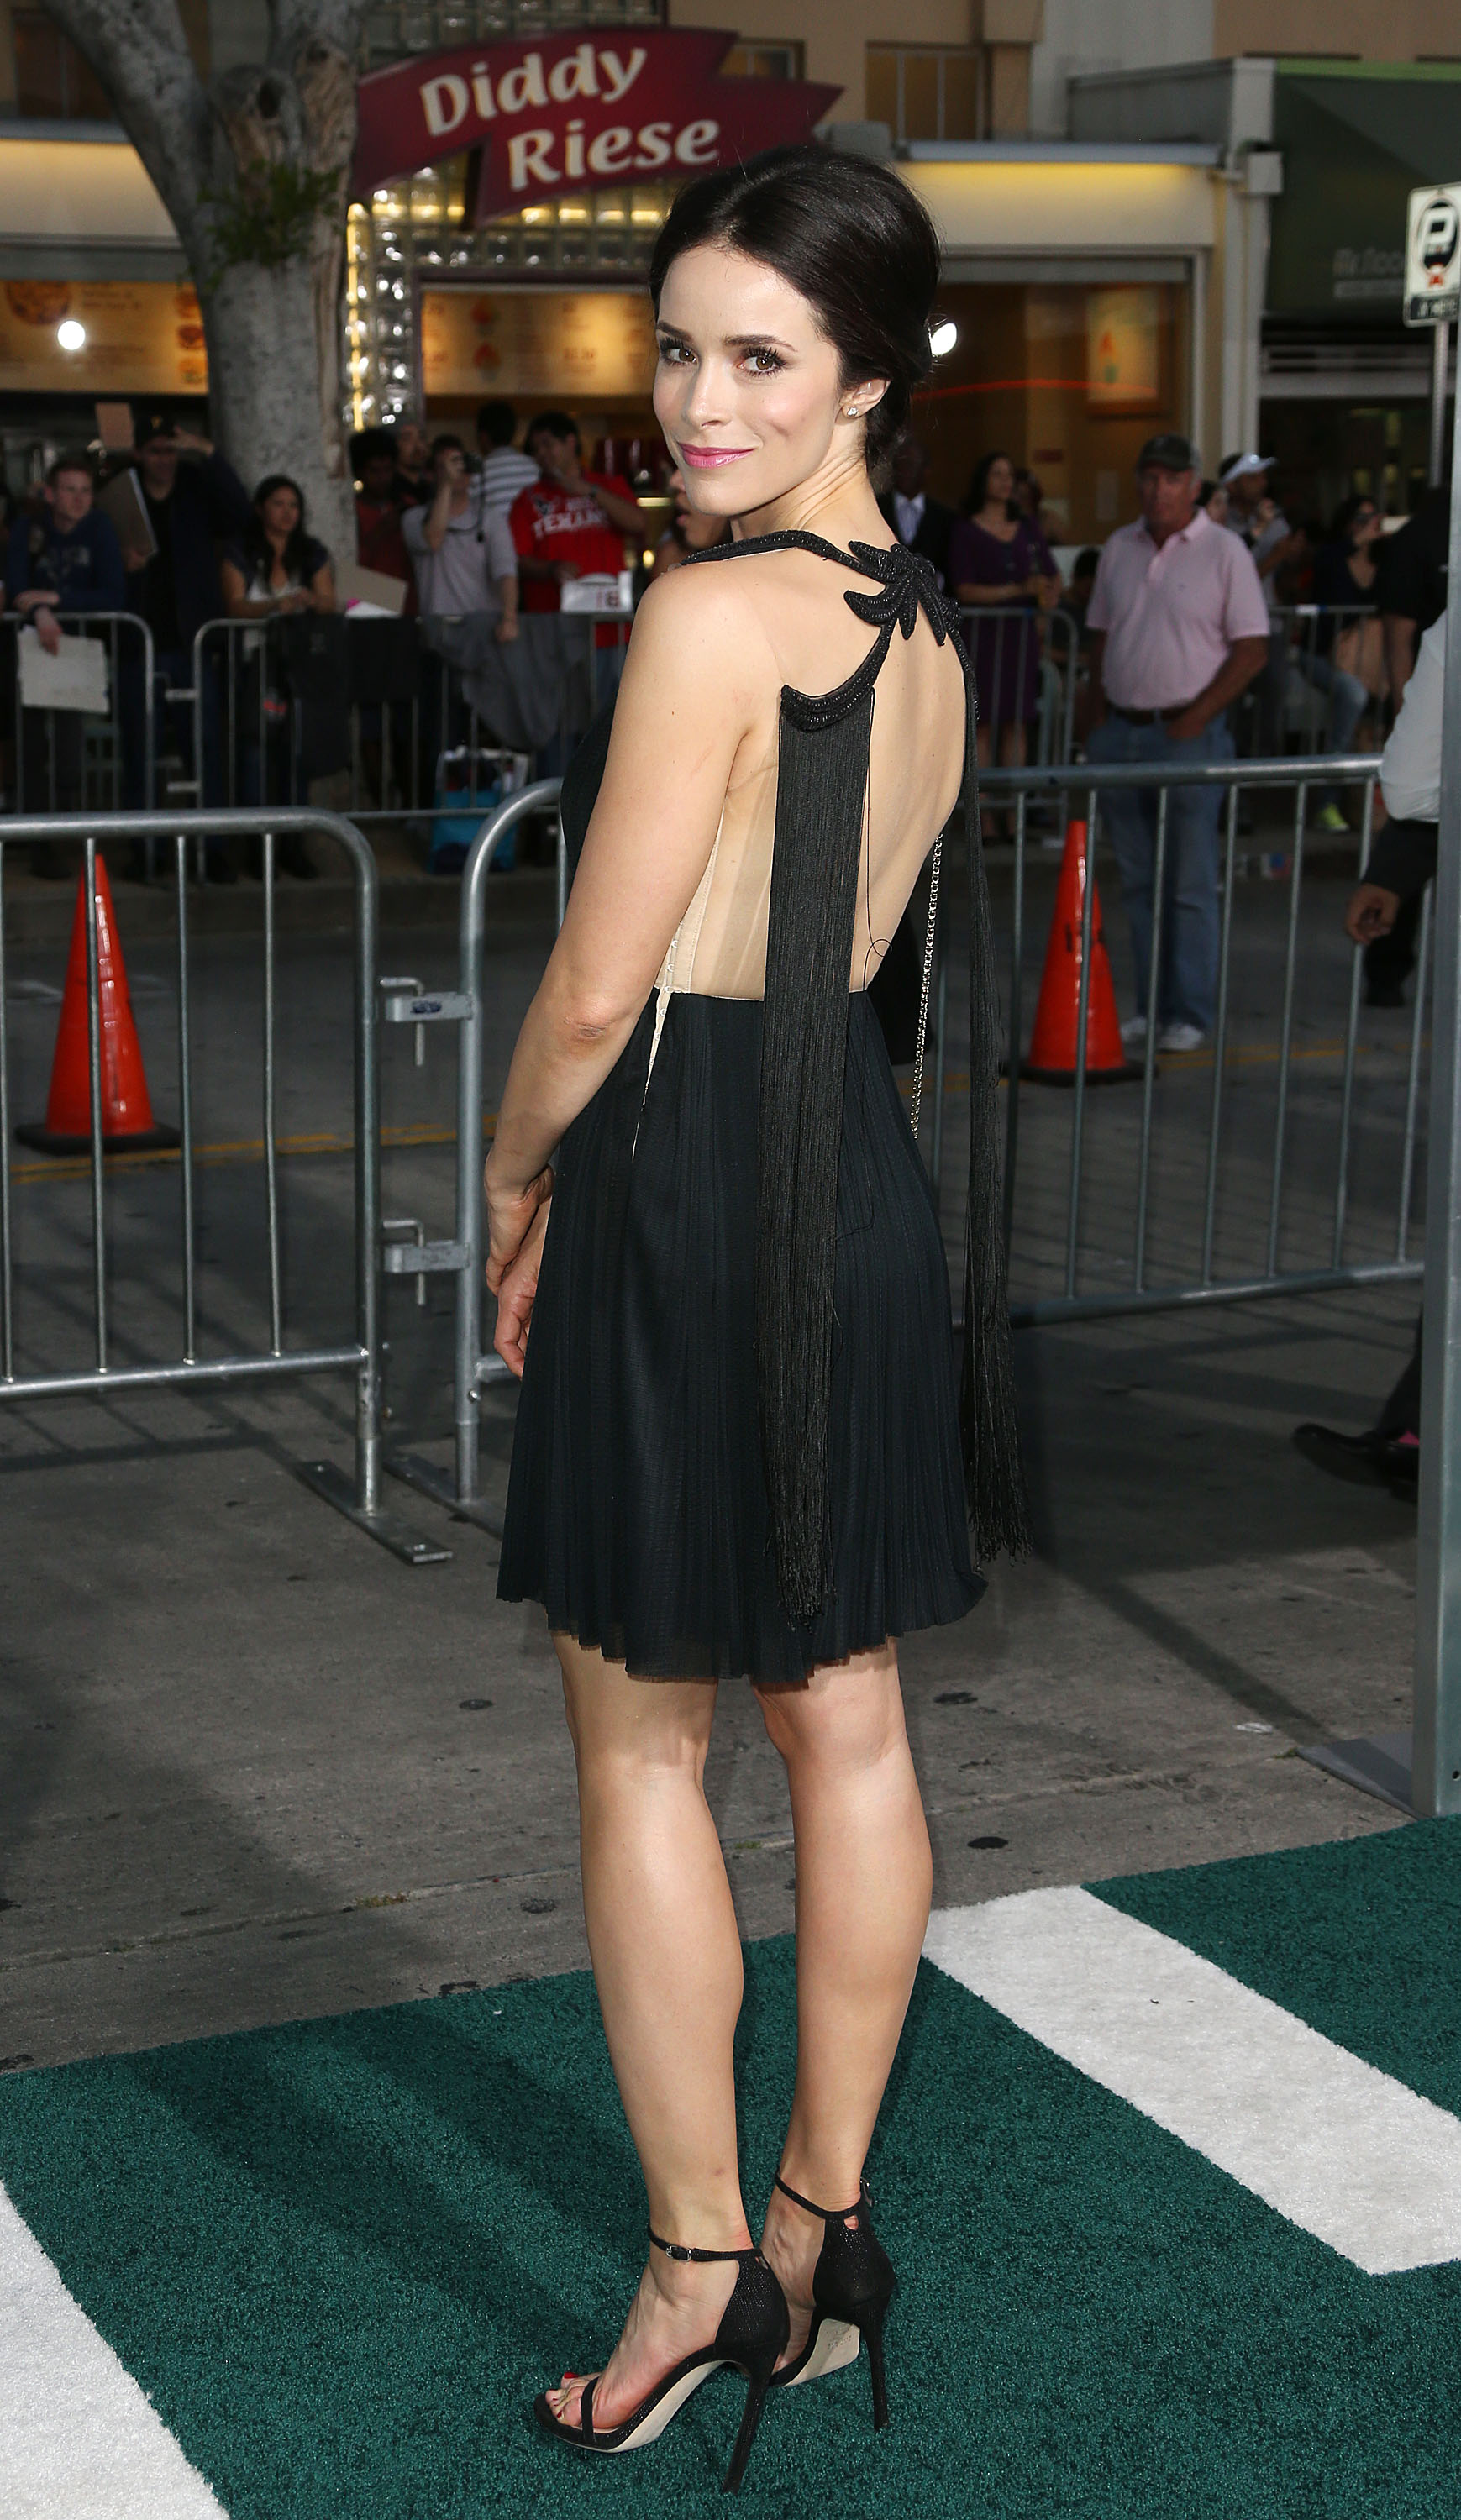 Abigail Spencer Nude - 14 Pictures: Rating 8.37/10